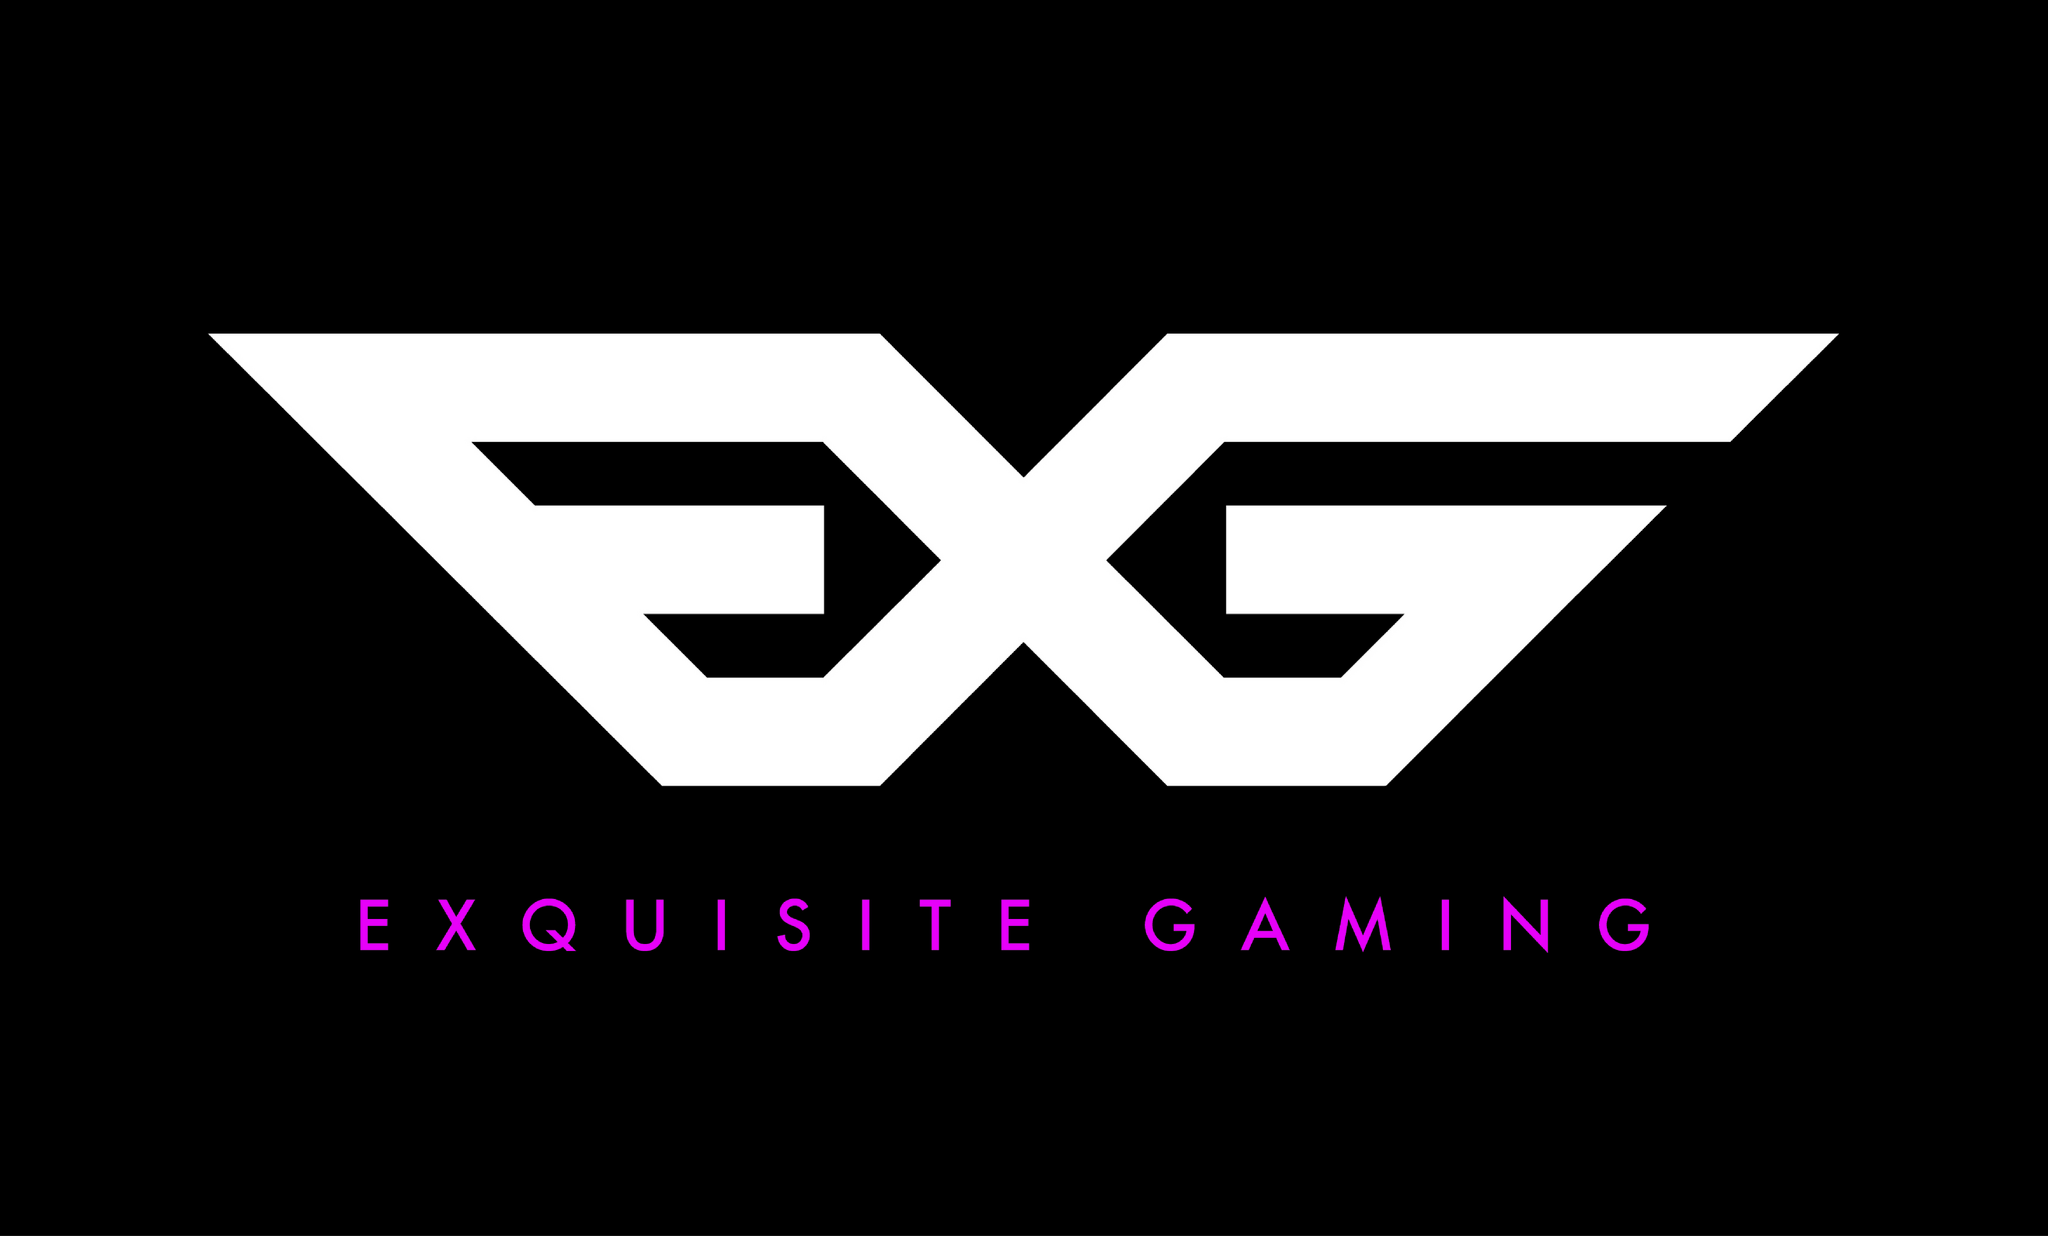 Exquisite Gaming Limited